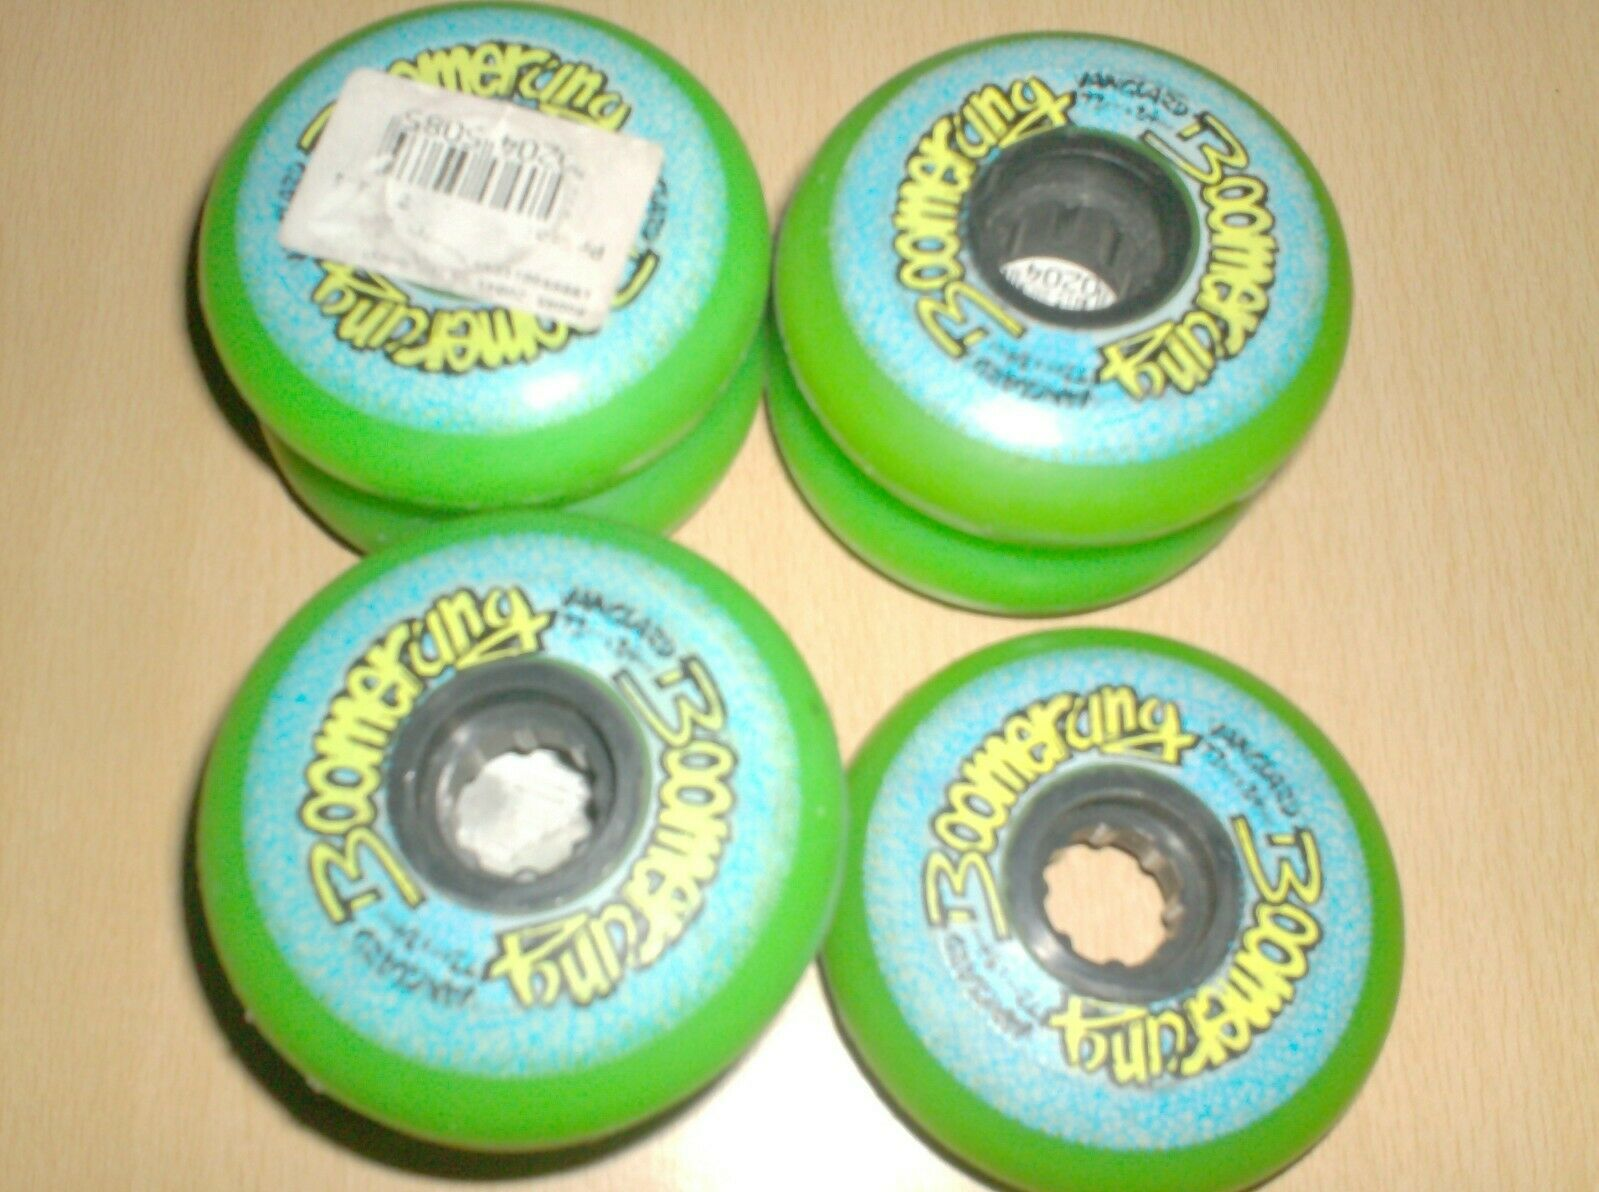 Vintage rollerblade wheels - set of 7 - boomerang vanguard green new nos 1980